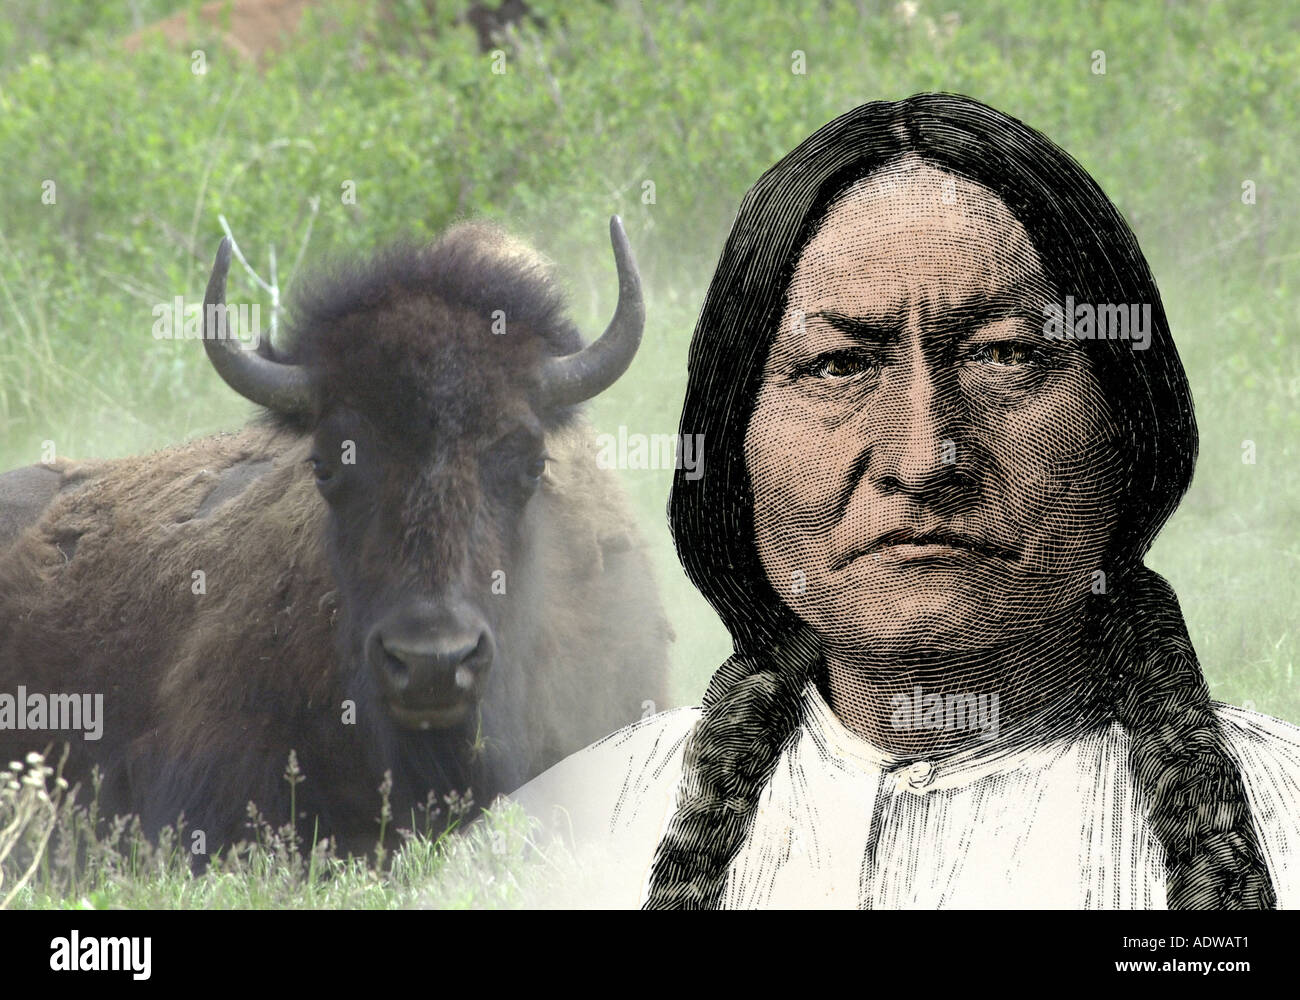 Sioux leader Sitting Bull. Hand-colored woodcut combined with a photograph - Stock Image